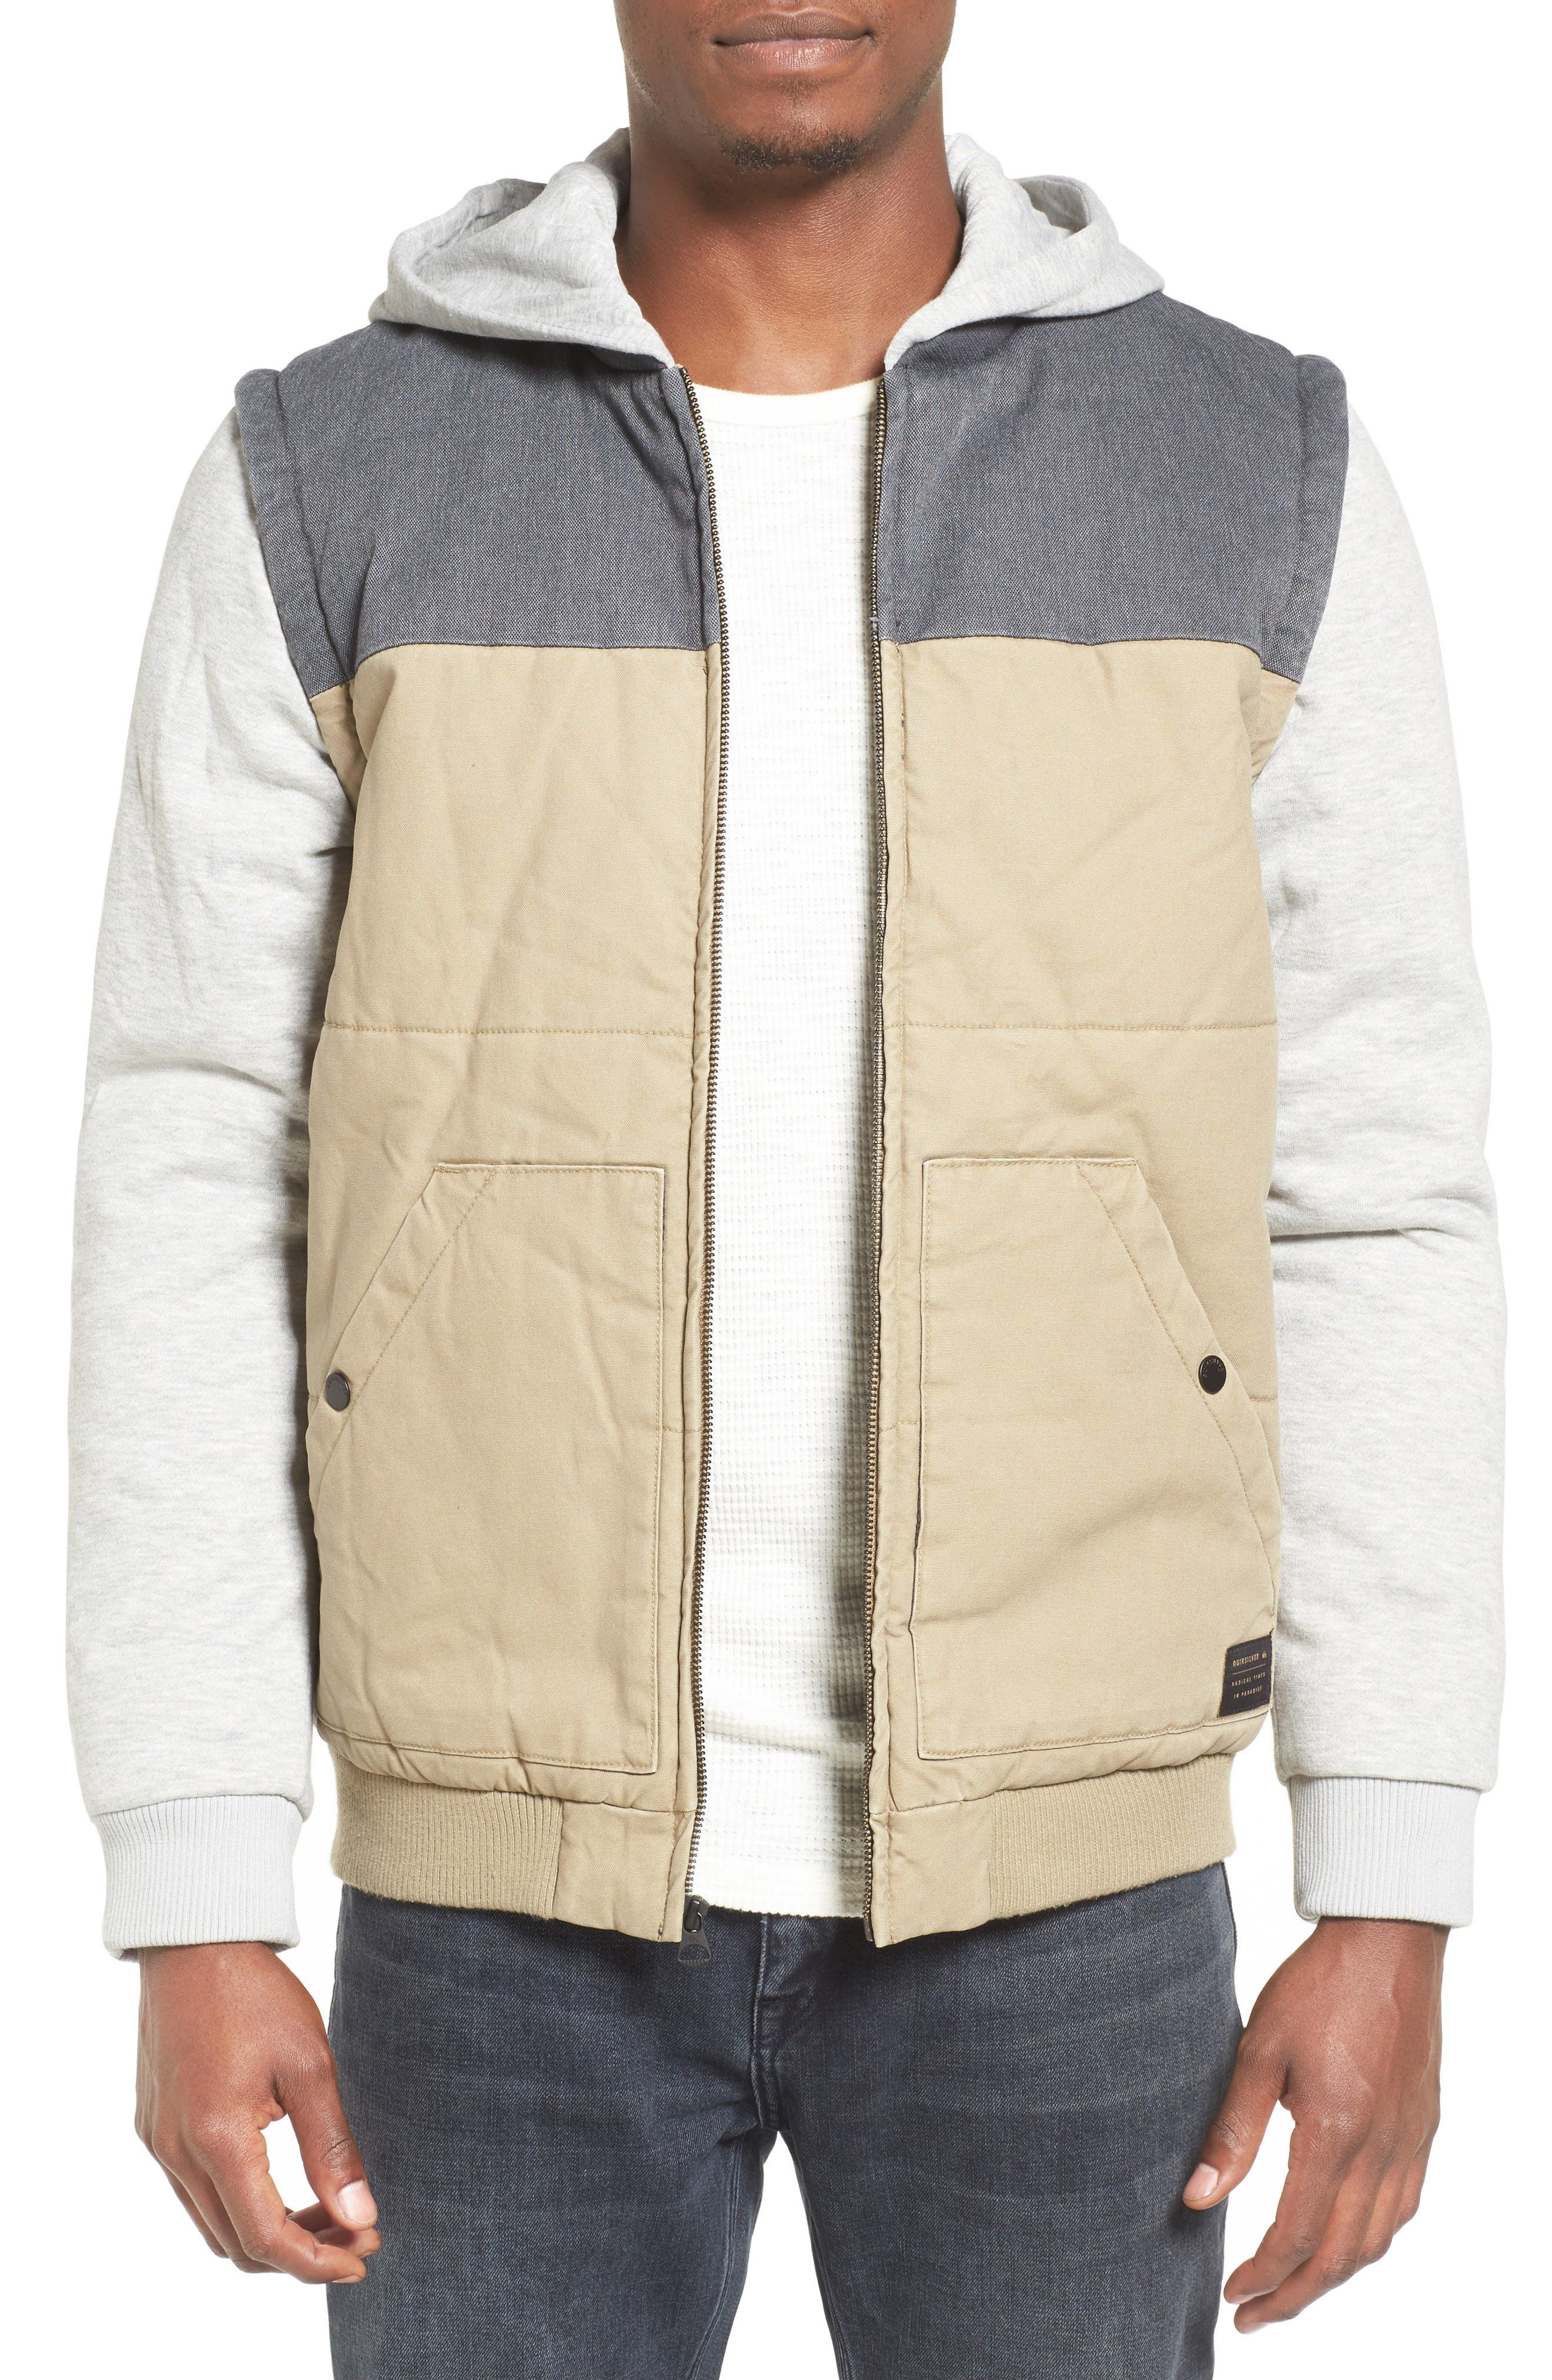 Quiksilver Main Mission Jacket